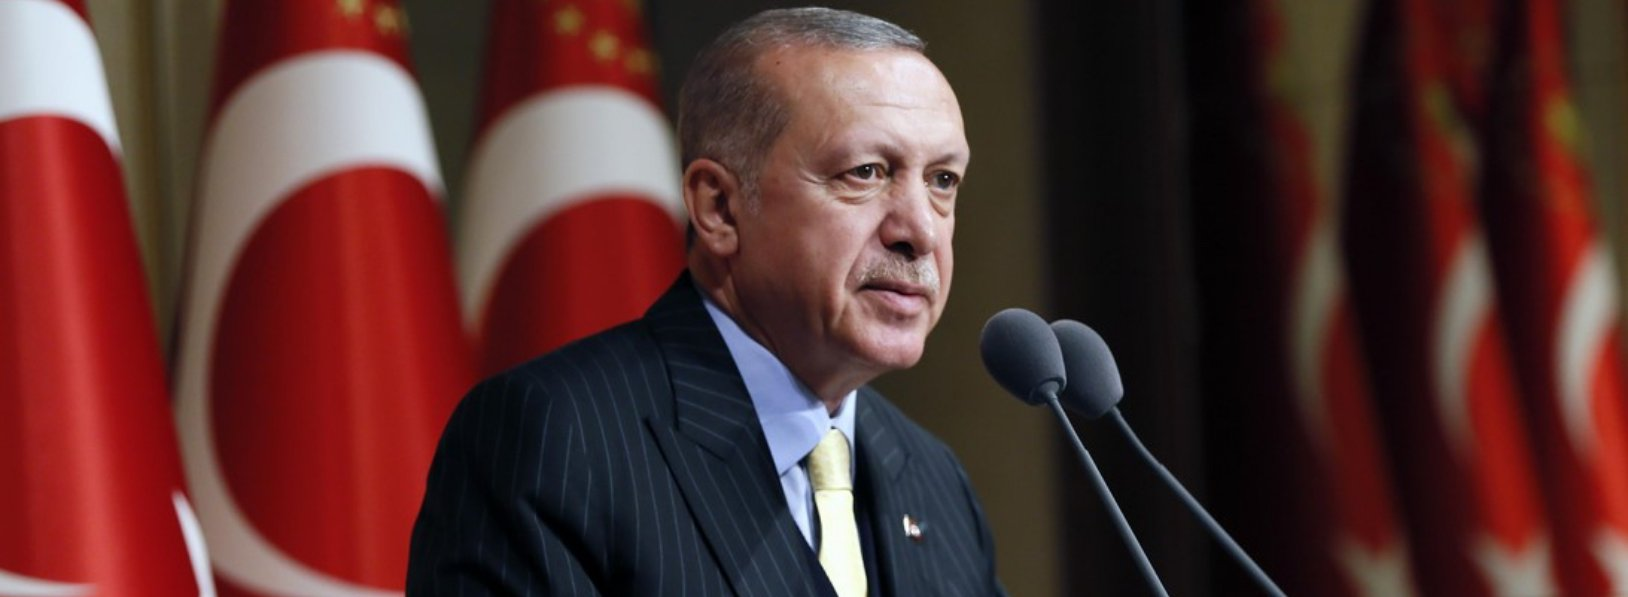 President Erdogan: we will impose curfew restrictions on weekends across the country during the month of Ramadan.